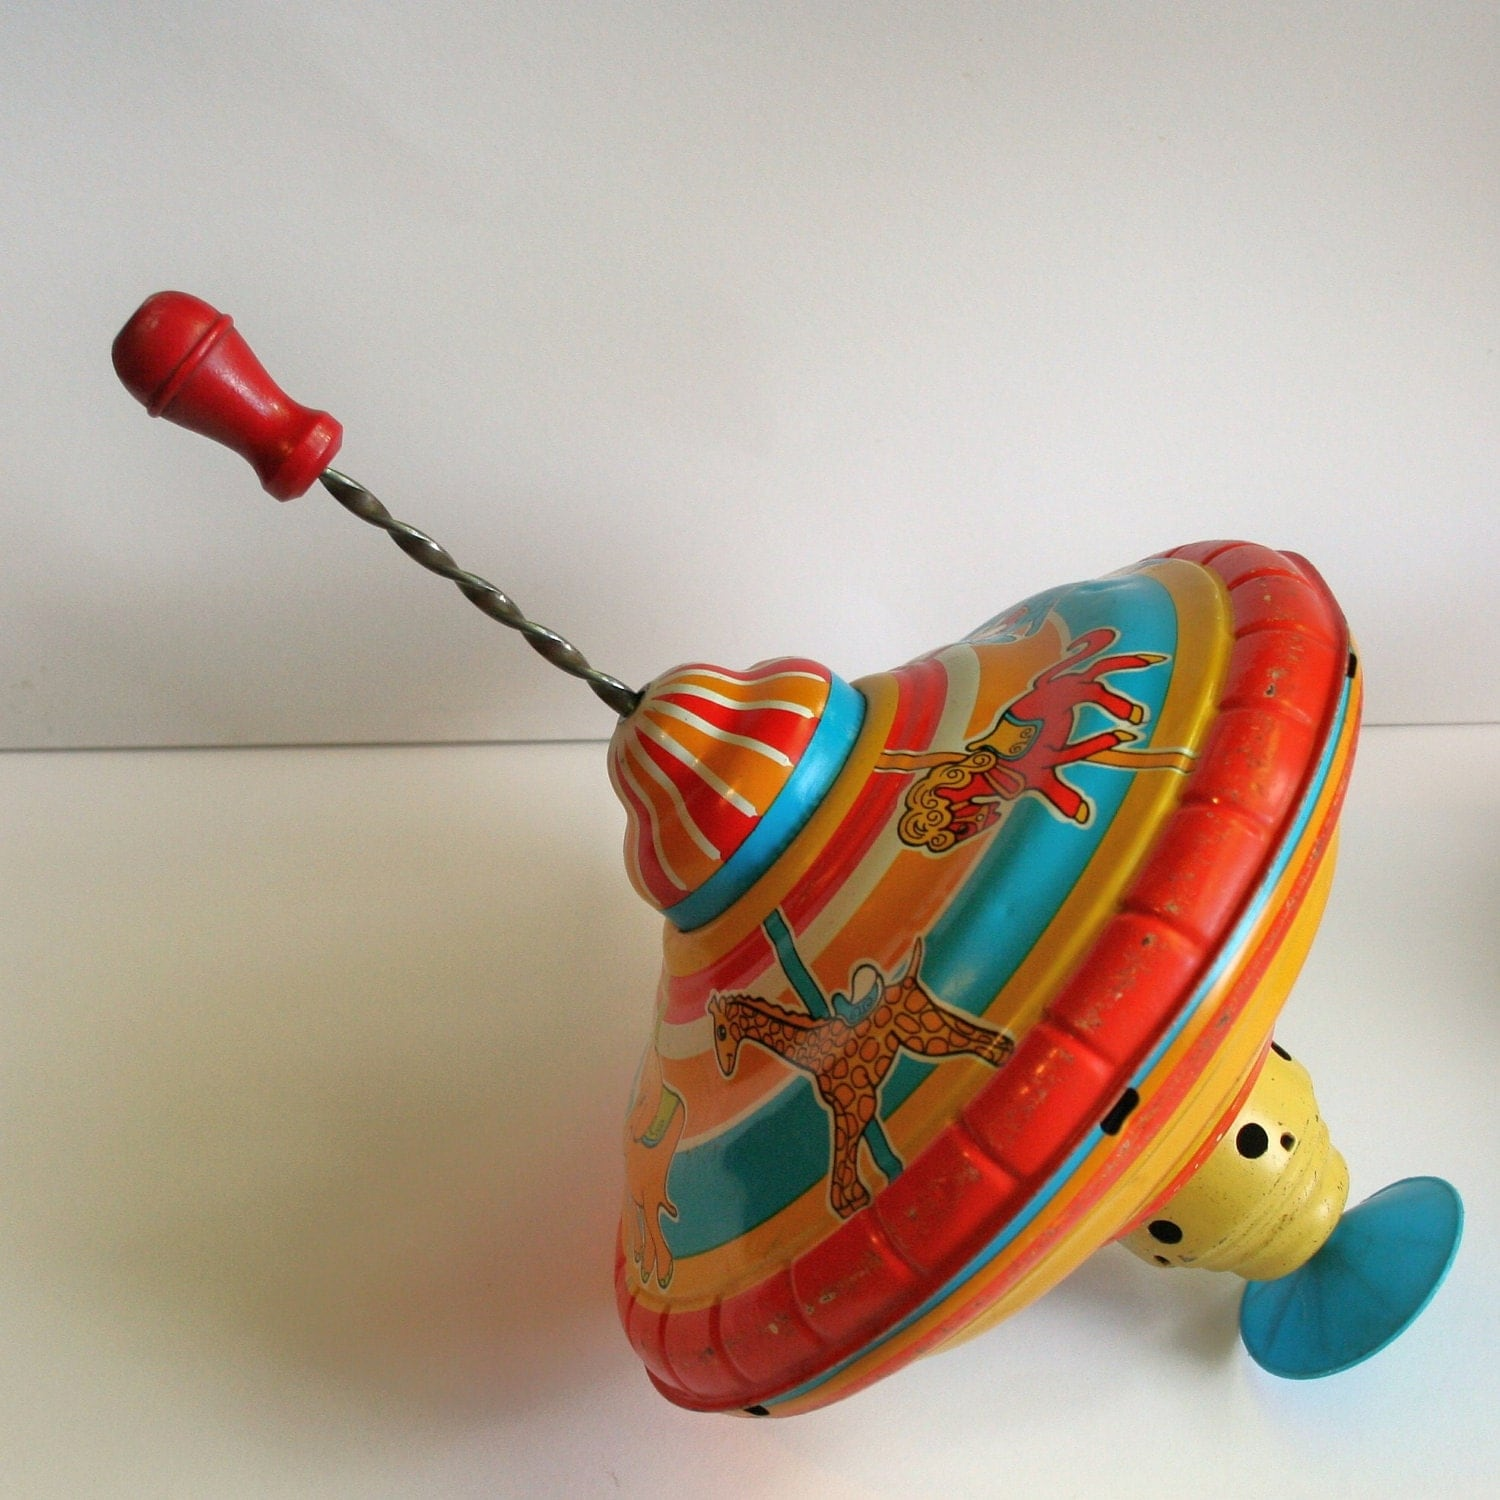 Toy Spinning Top : Vintage spinning top carousel design